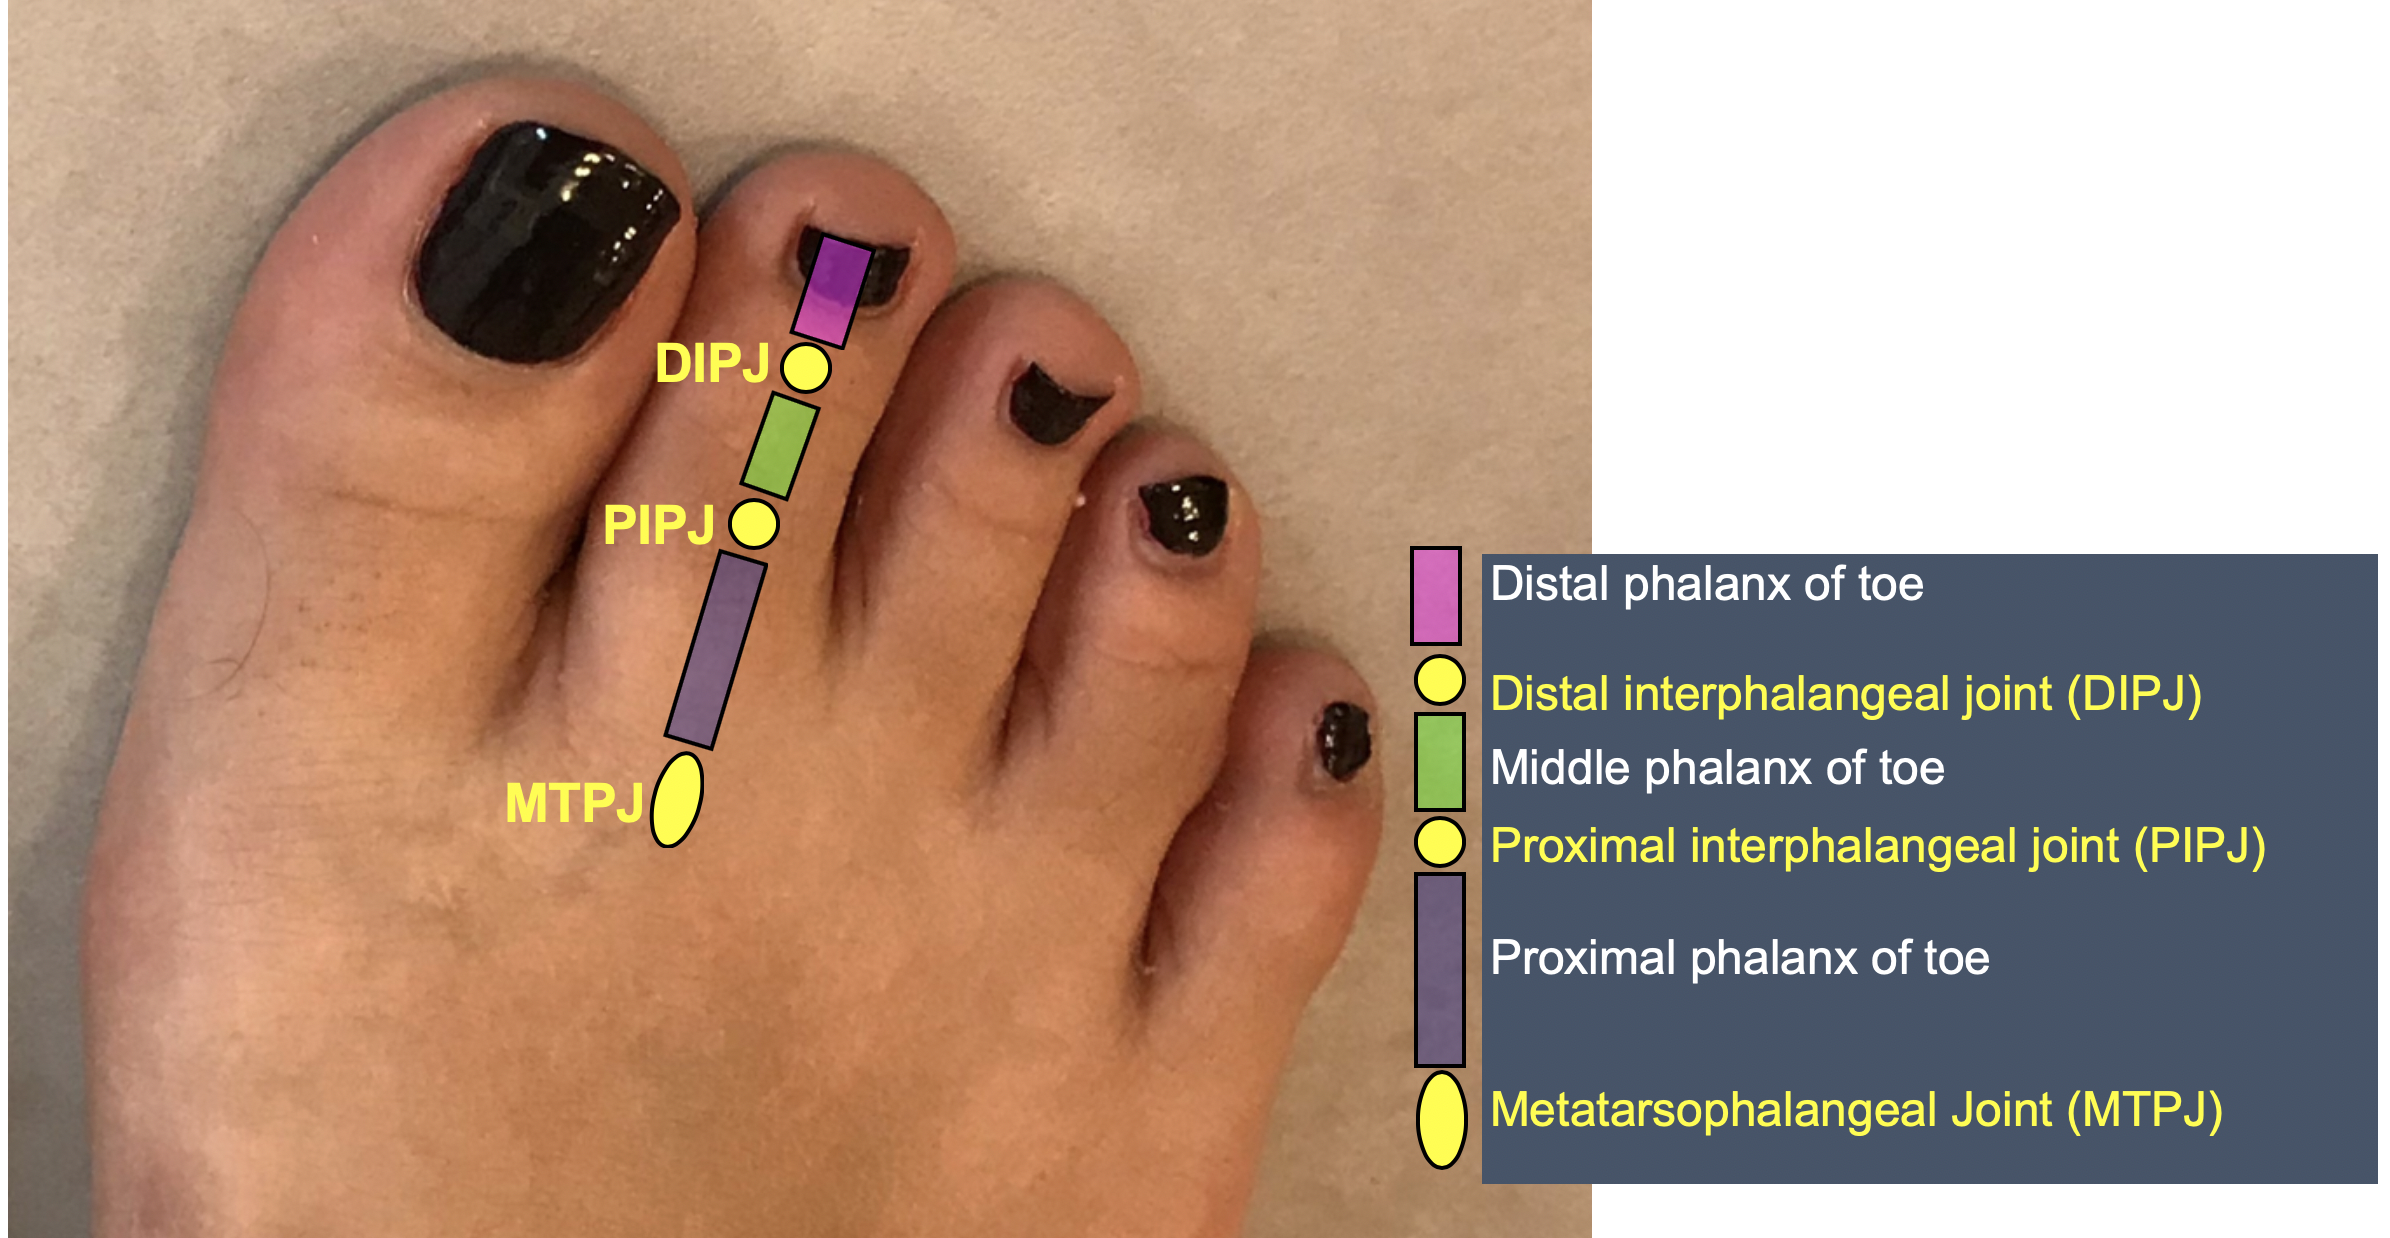 Key to toe terminology:  This diagram explains the nomenclature used in describing the different parts of the lesser toes.